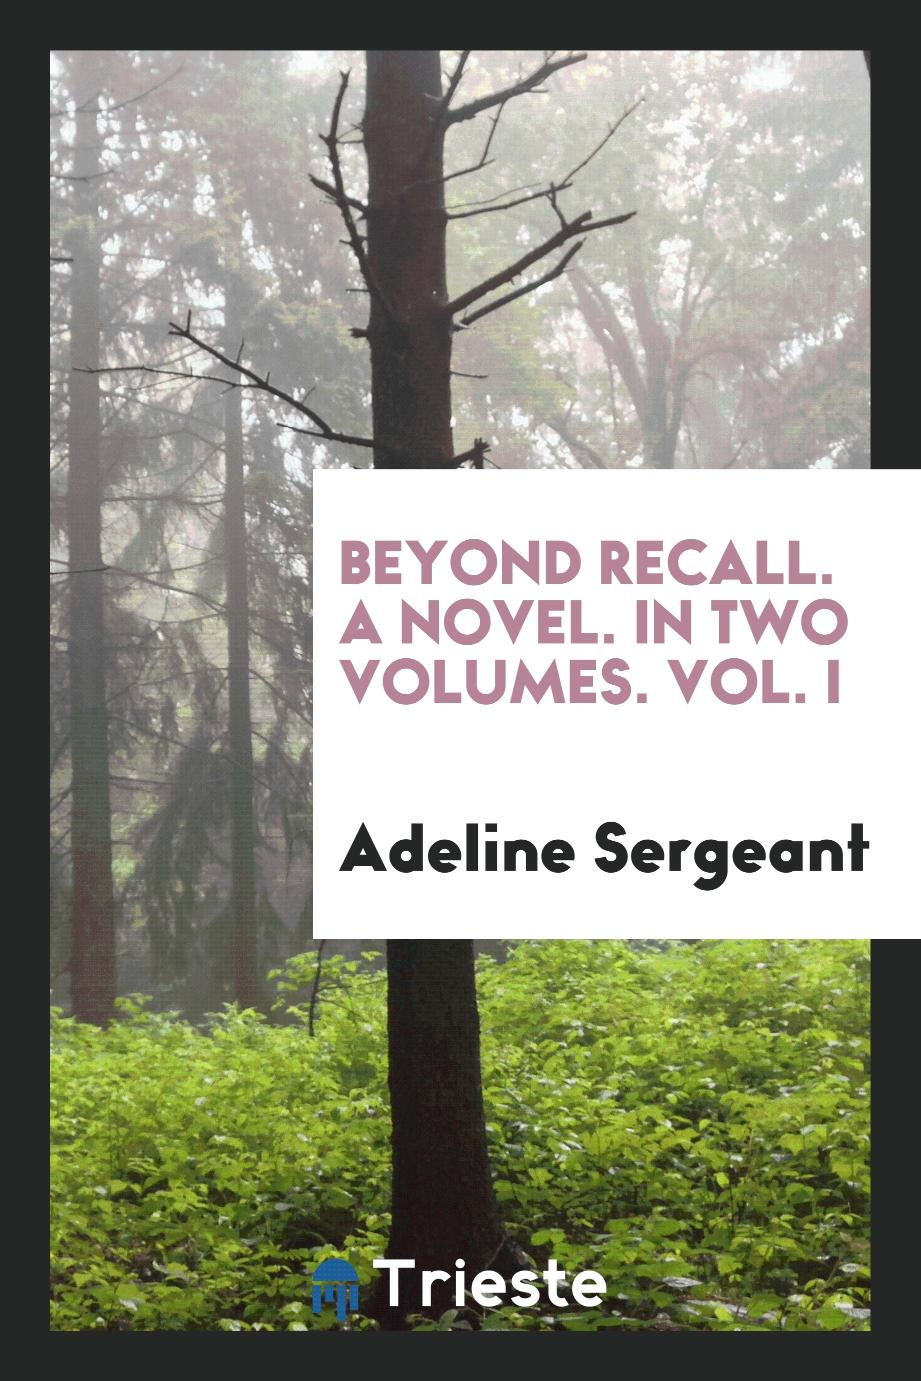 Beyond Recall. A Novel. In Two Volumes. Vol. I